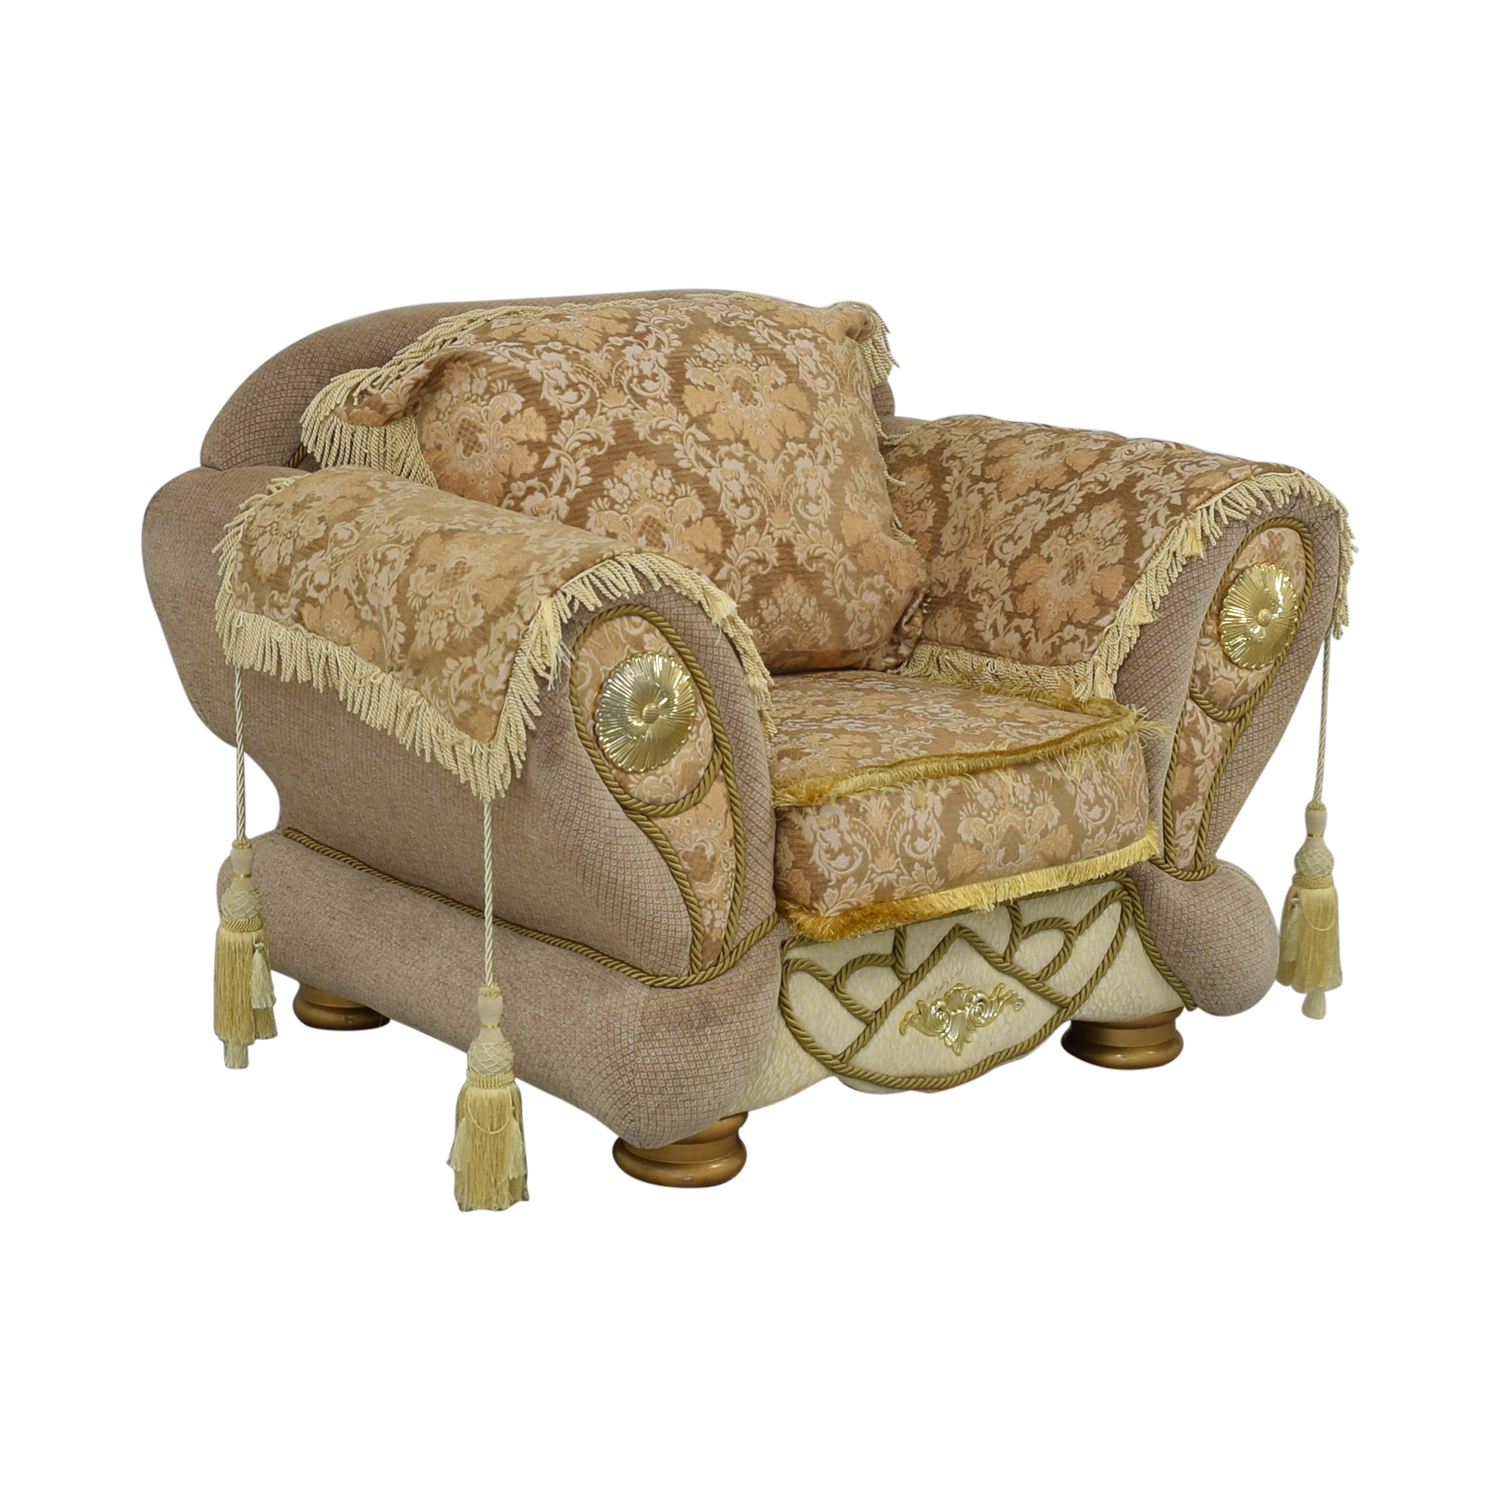 87 Off Elegant Furniture And Lighting Victorian Chair Chairs